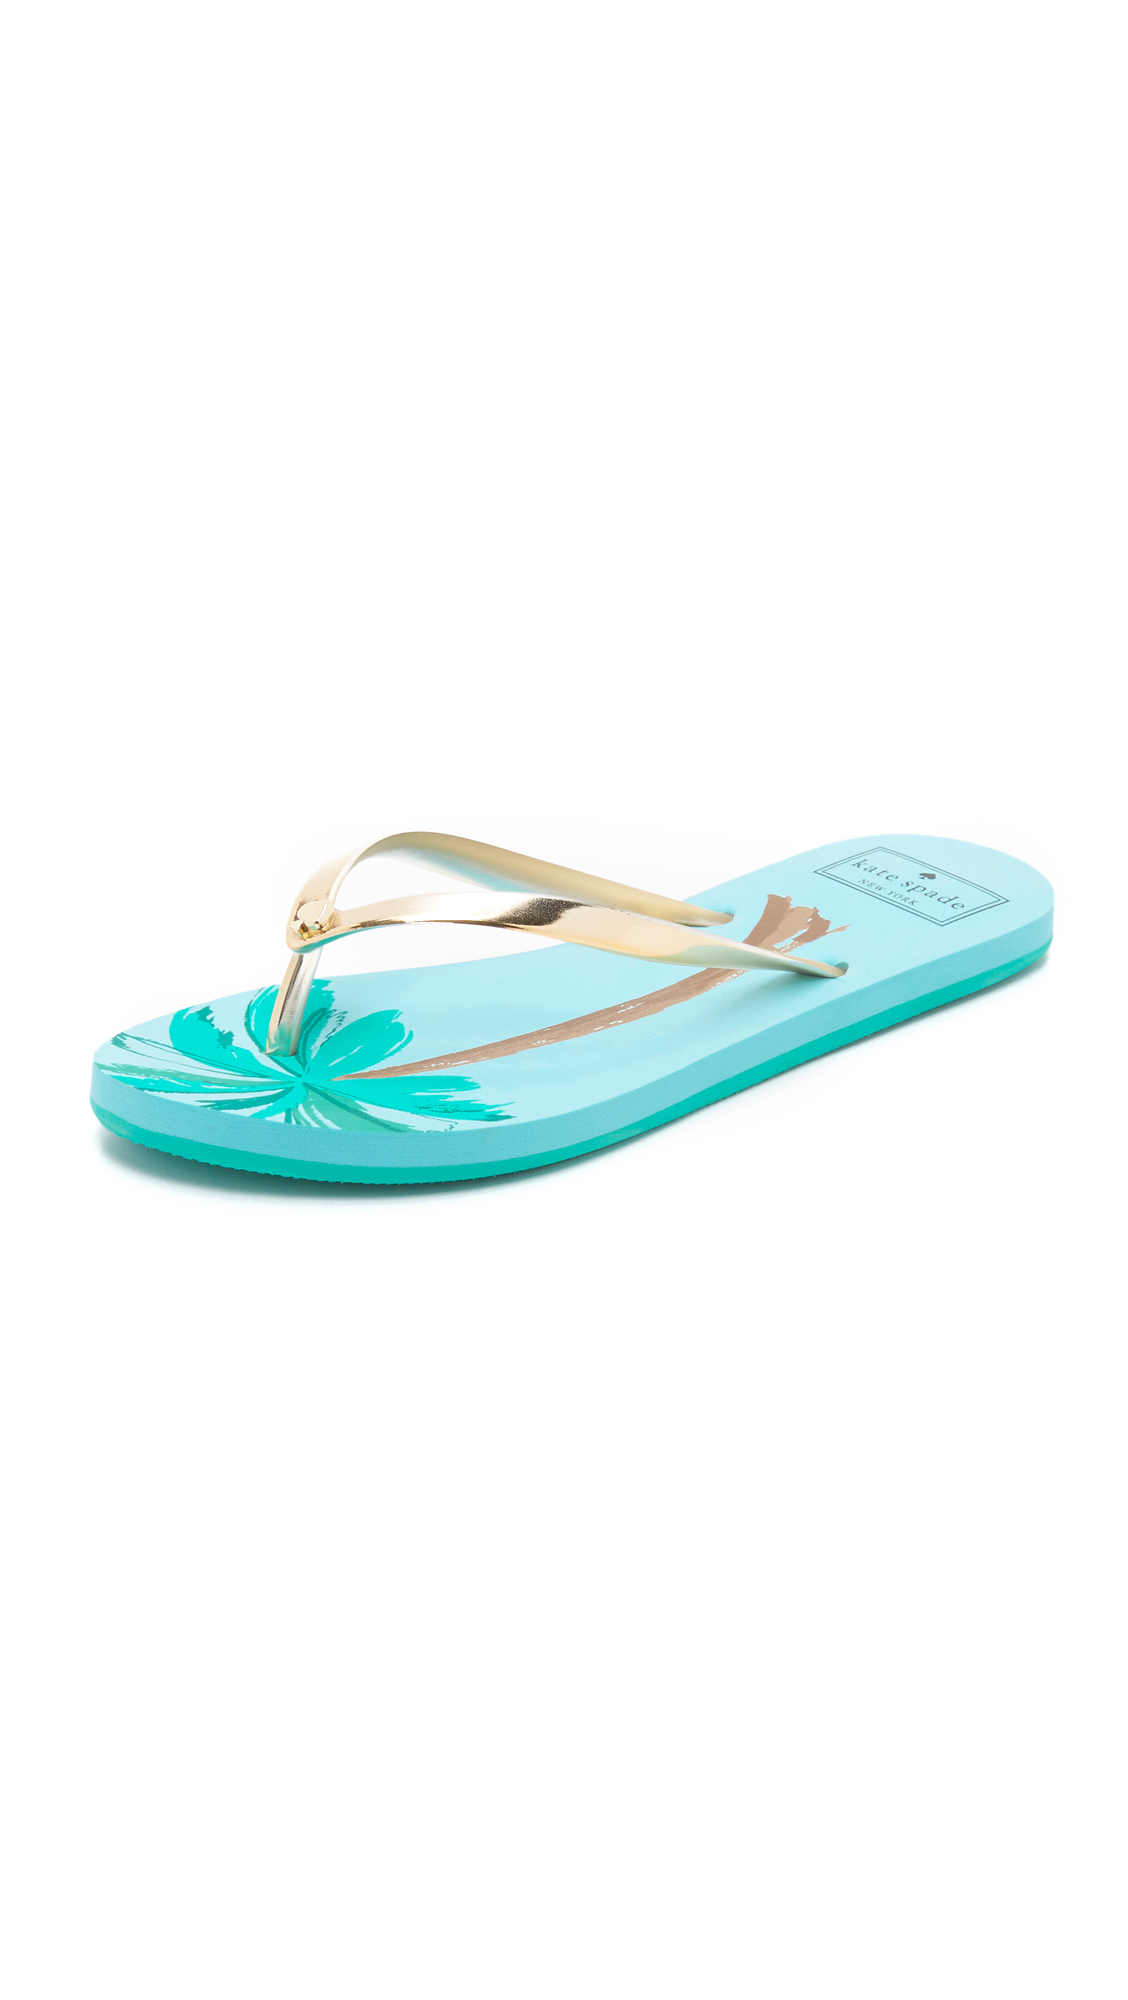 Kate Spade New York I Need A Vacation Flip Flops - Gold